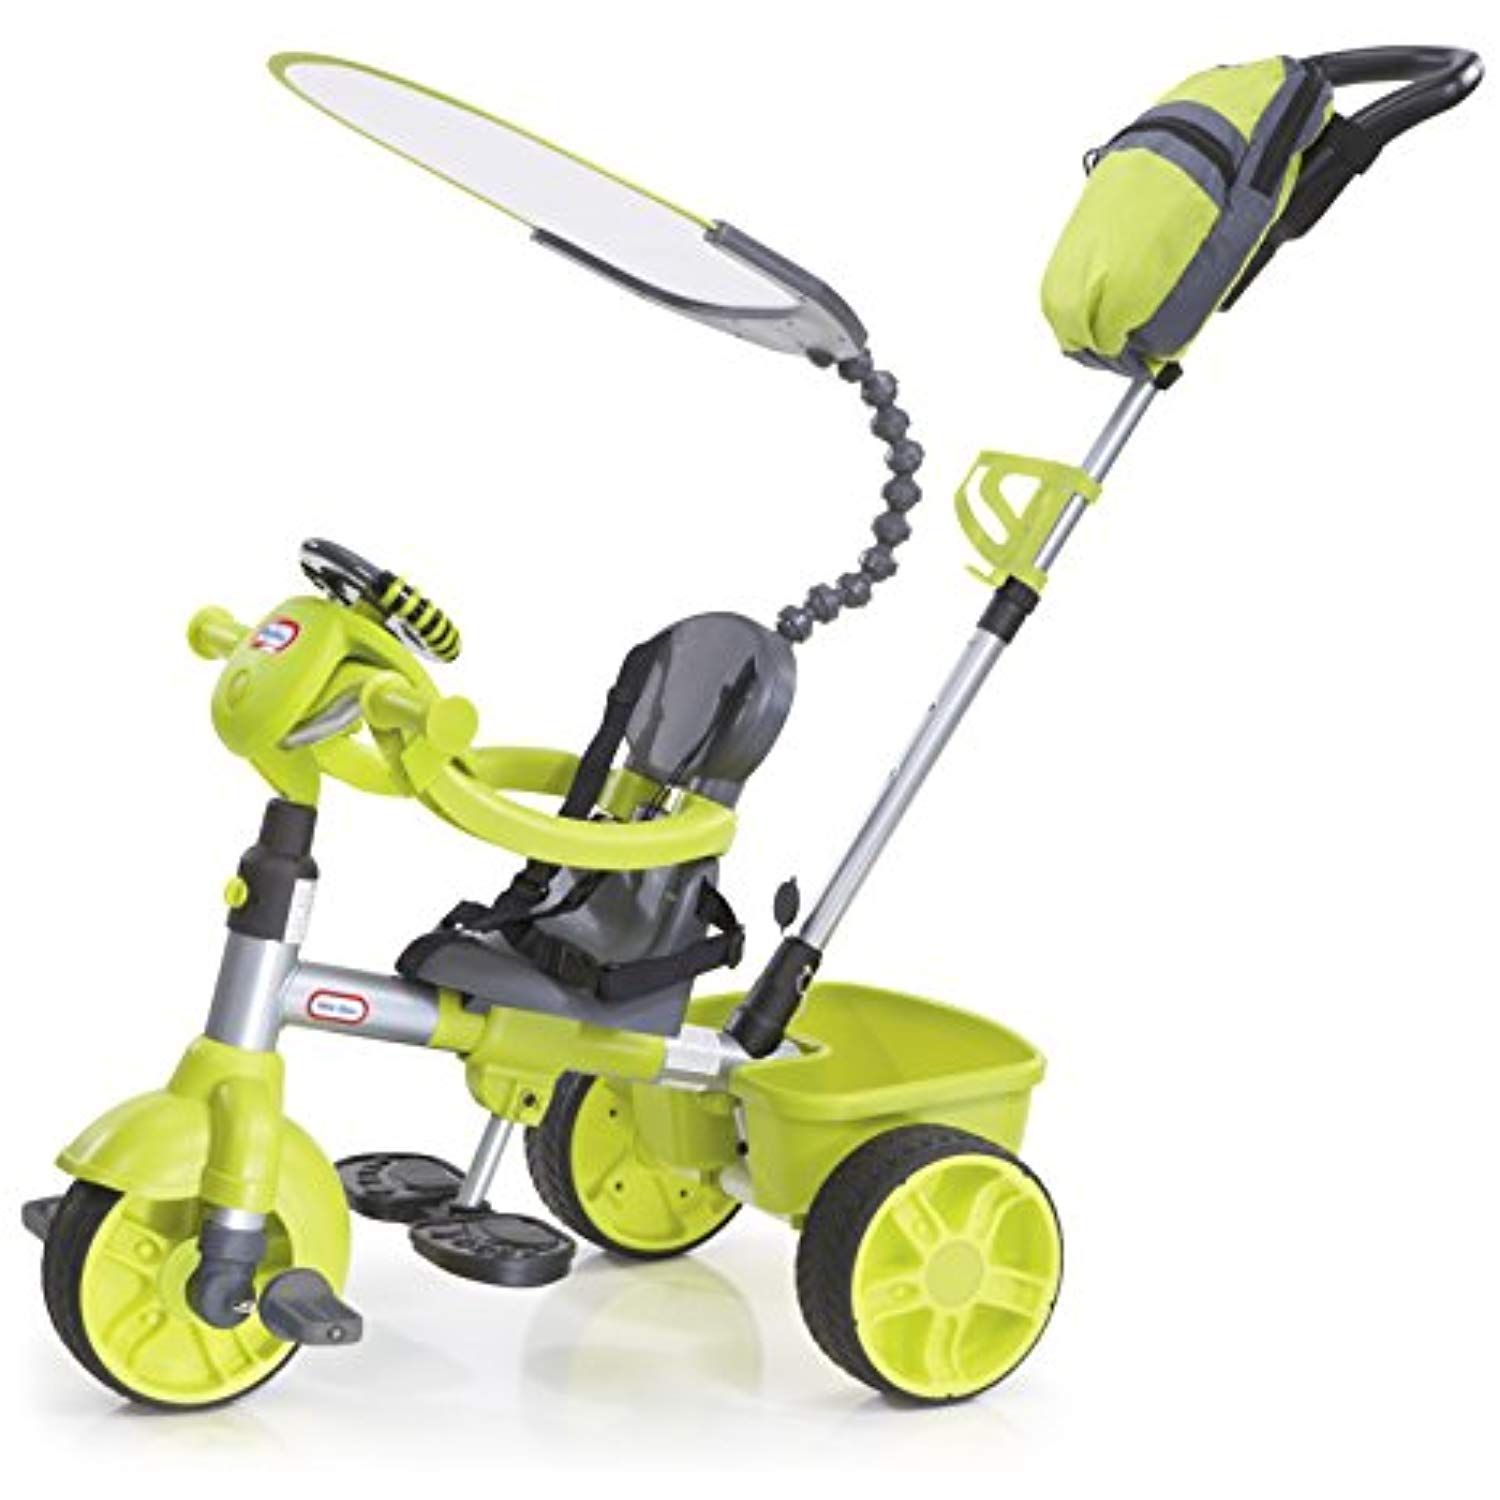 Little Tikes 4in1 Deluxe Edition Pedal Trike with